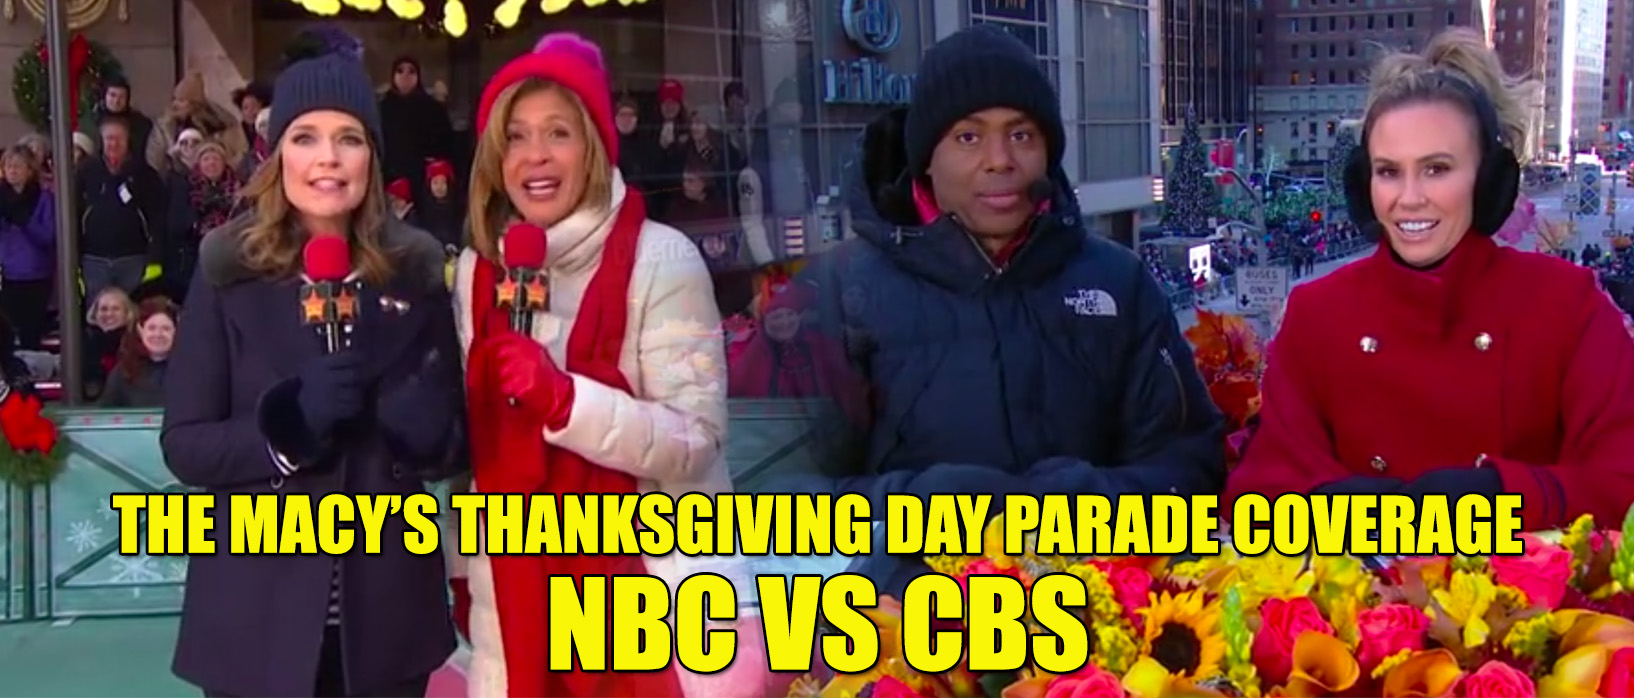 Macy's Thanksgiving Parade Coverage By NBC & CBS – Still Horrible